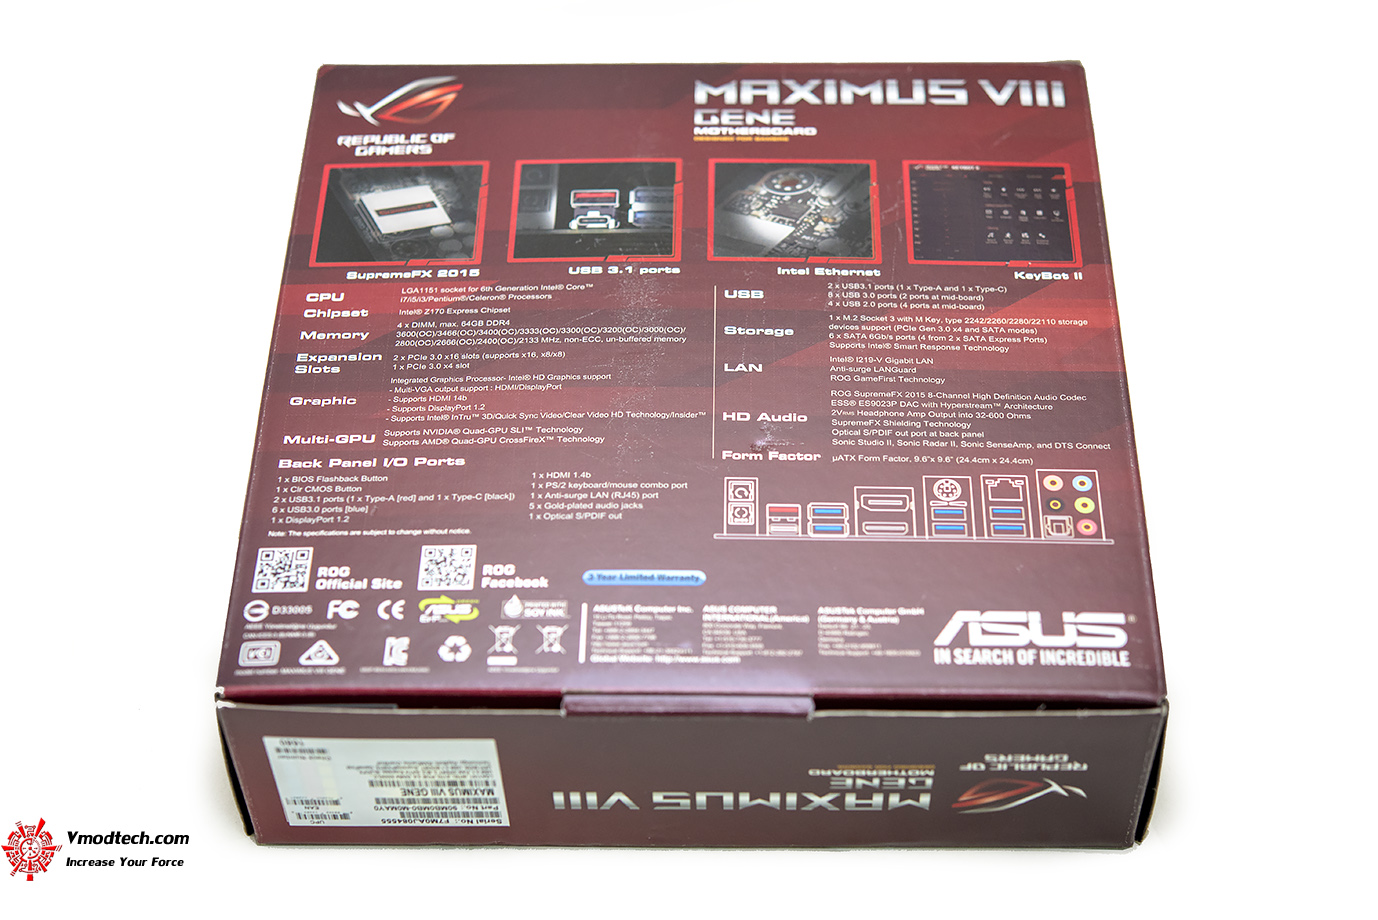 dsc 9031 ASUS ROG MAXIMUS VIII GENE Motherboard Review